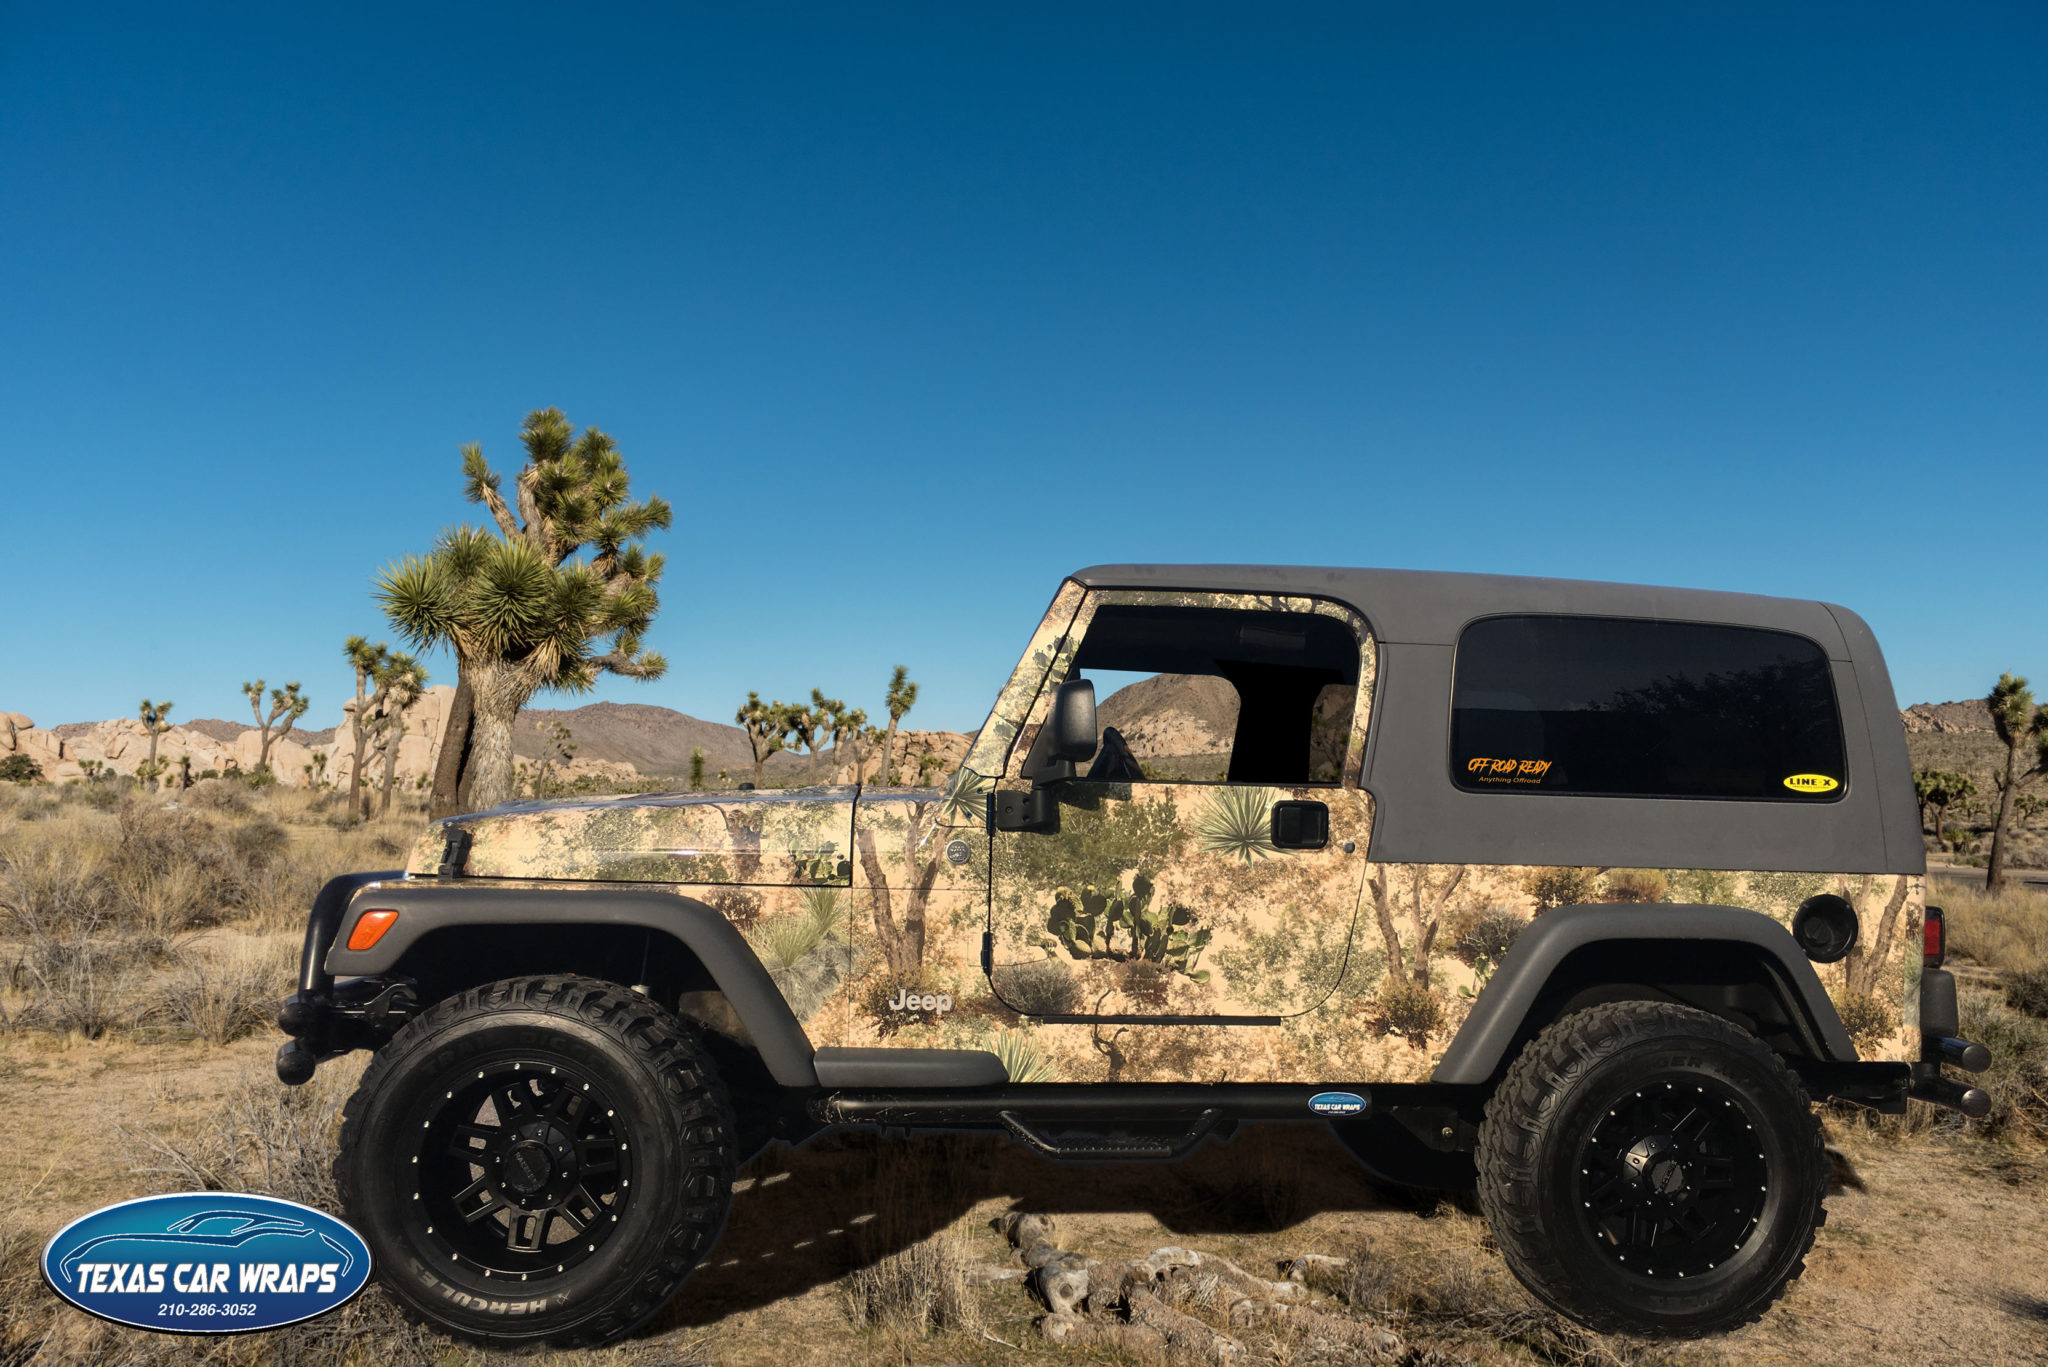 Texas Car Wraps - Laredo | Vehicle Wrap Laredo TX | Truck Wrap Laredo TX | Jeep Wrap Laredo TX | Car Wrap Laredo TX | Vehicle Graphics Laredo TX | Vinyl Graphics Laredo TX | Car Wrap Laredo TX | Hunting Camouflage Laredo TX | Camo Graphics Laredo TX | Camouflage Laredo TX | Camouflage | Texas Camouflage | Texas Camo